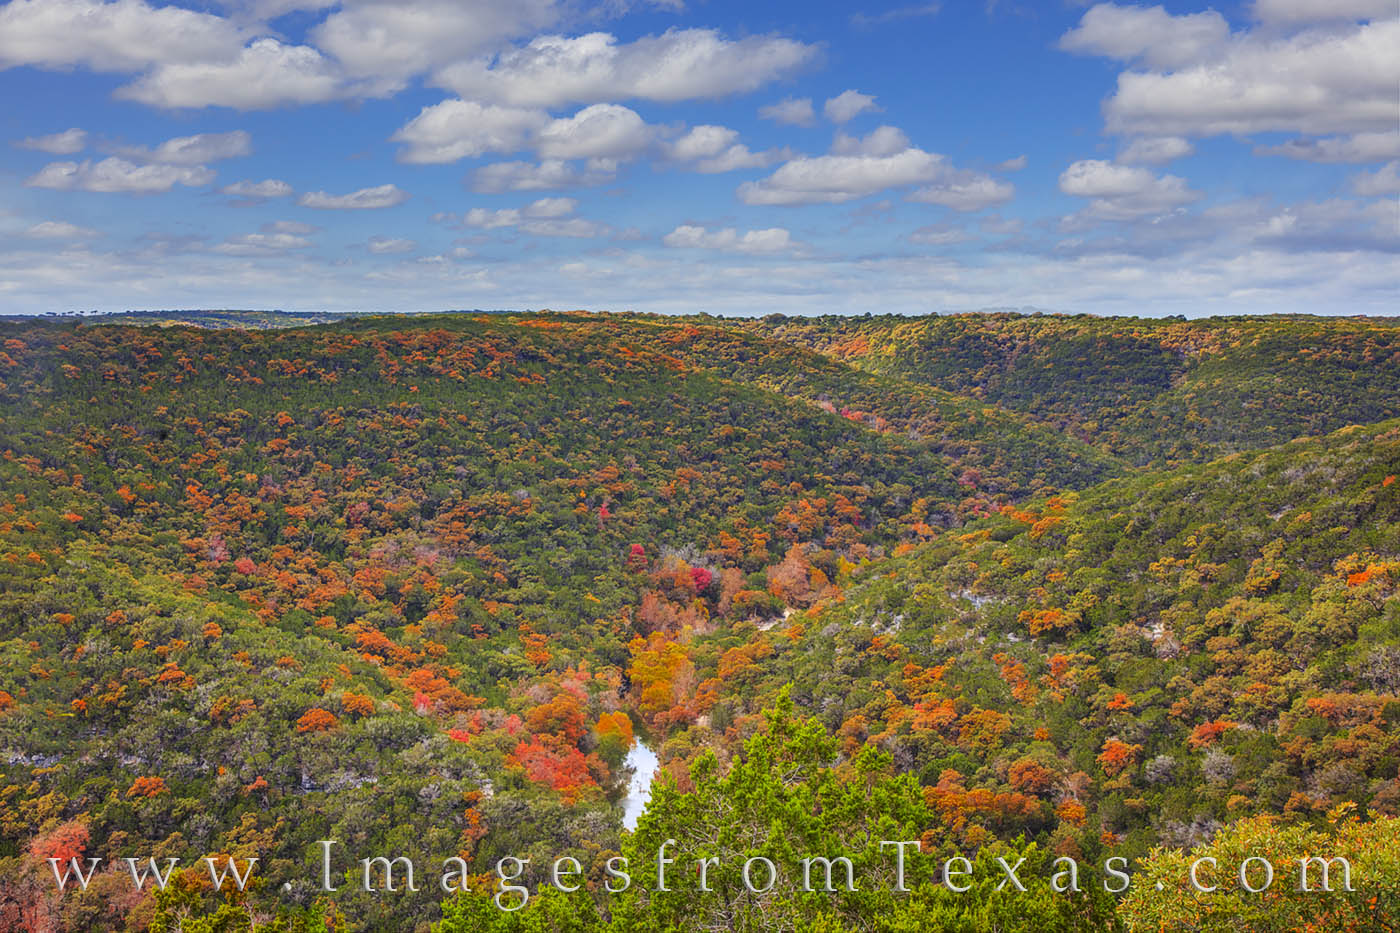 lost maples, autumn, fall colors, texas state parks, november, east trail, lost maples prints, photo